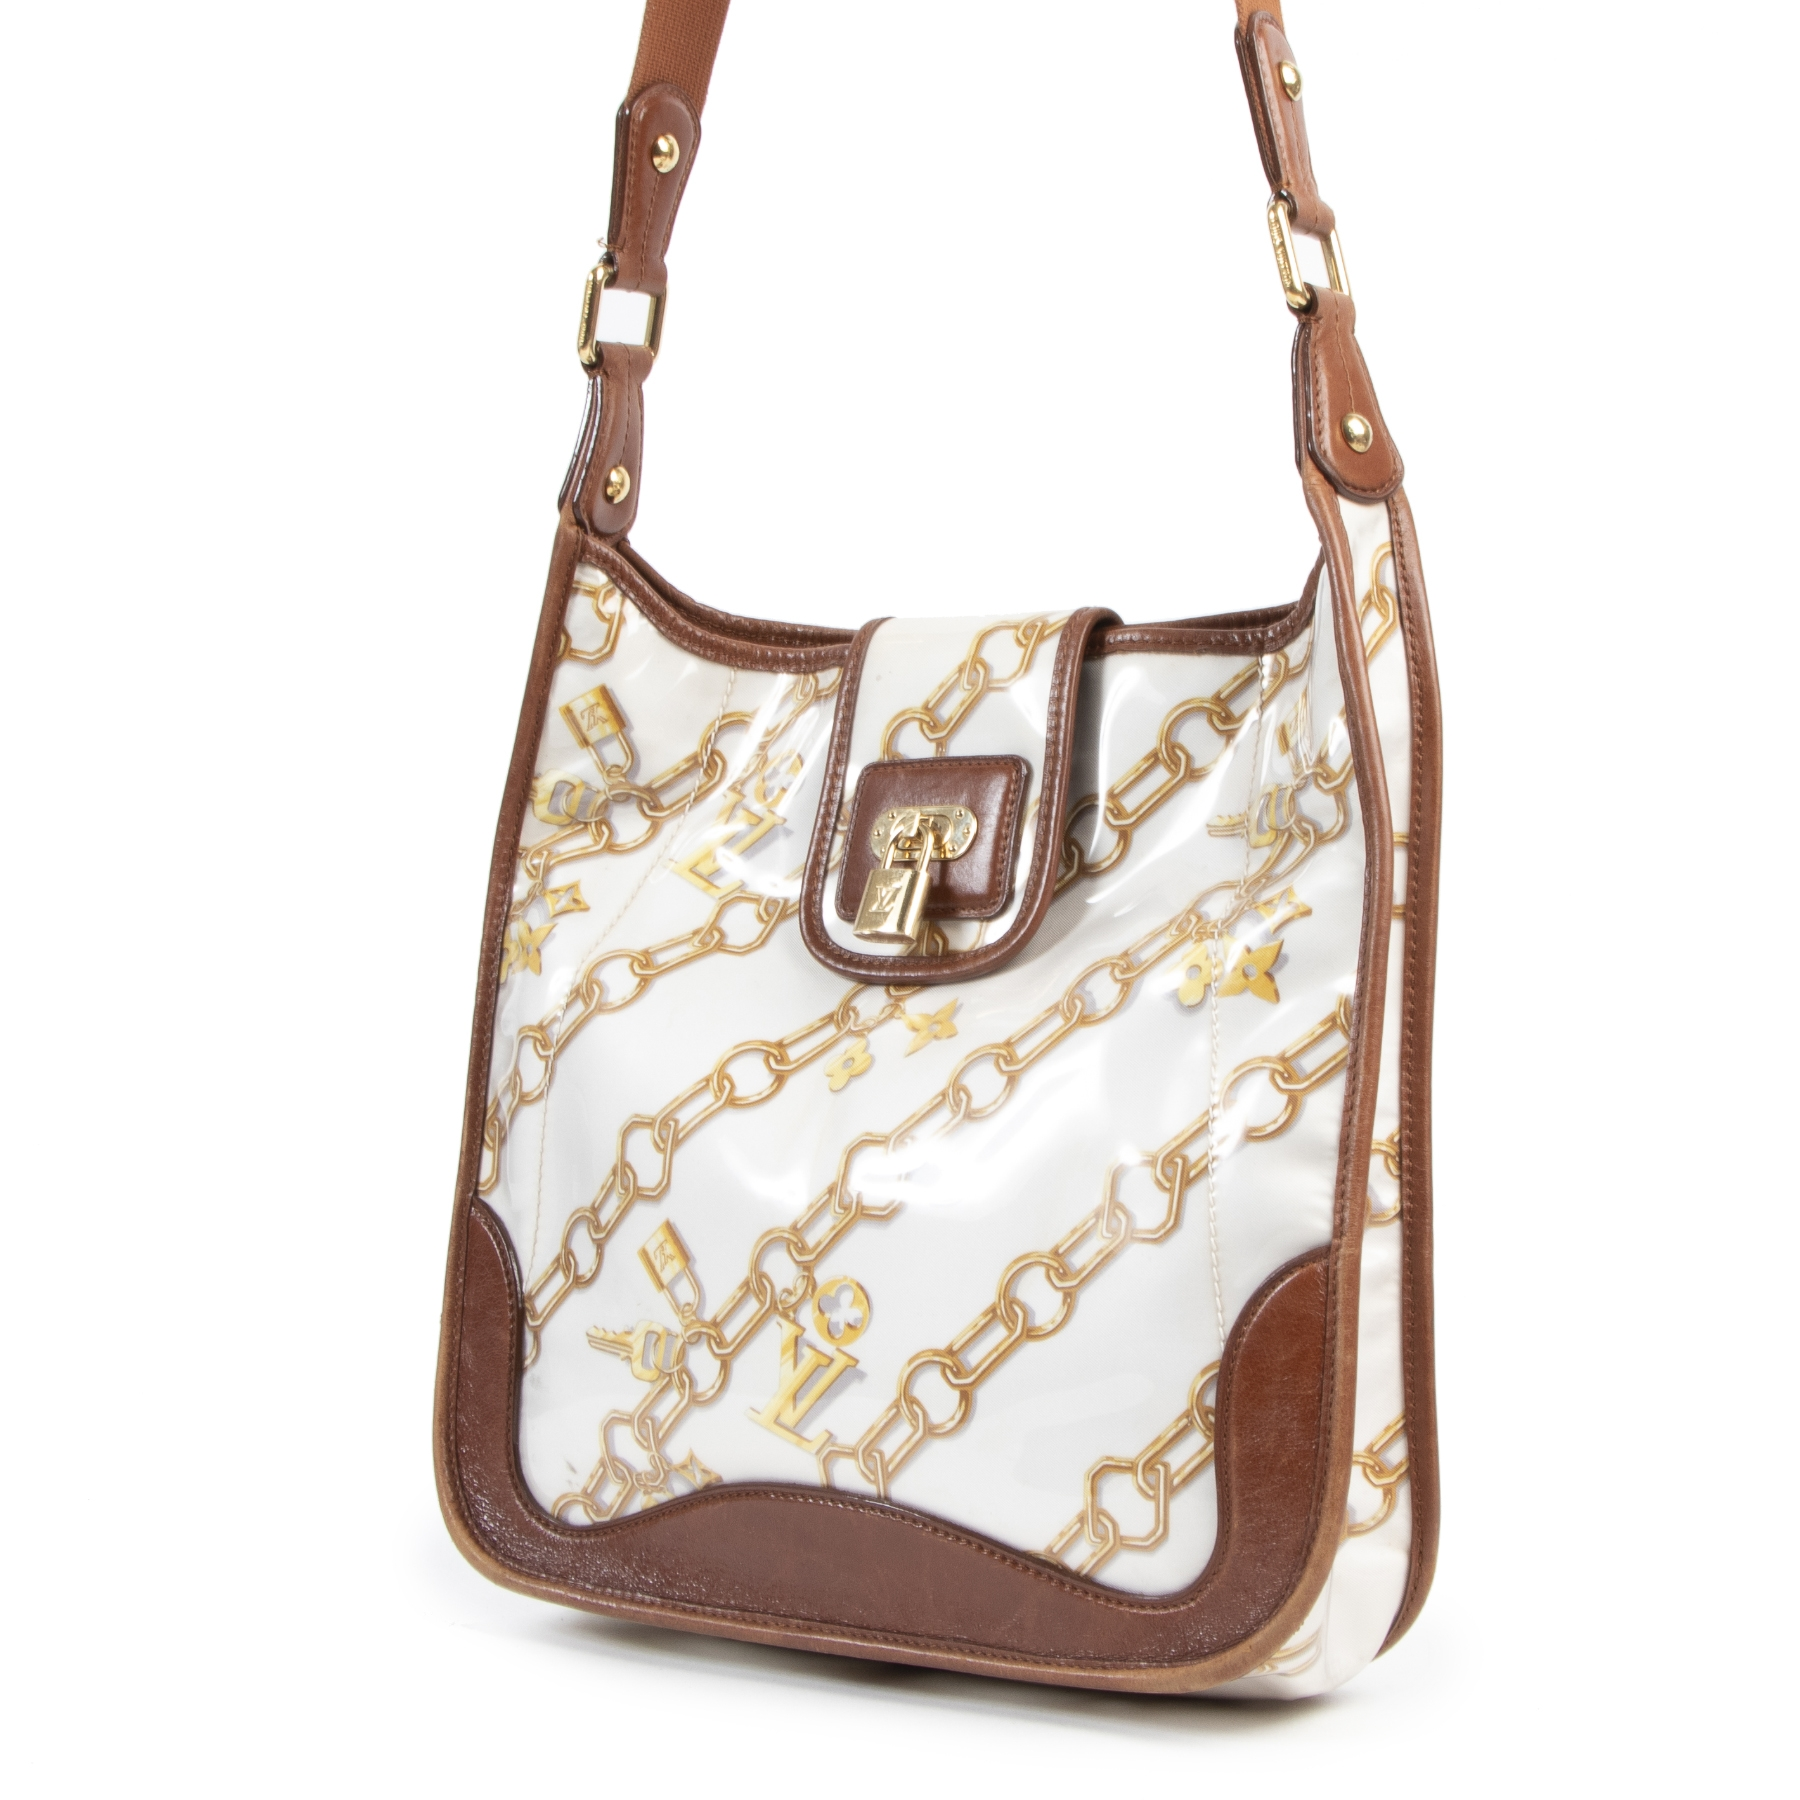 Louis Vuitton White Charms Musette Shoulder Bag